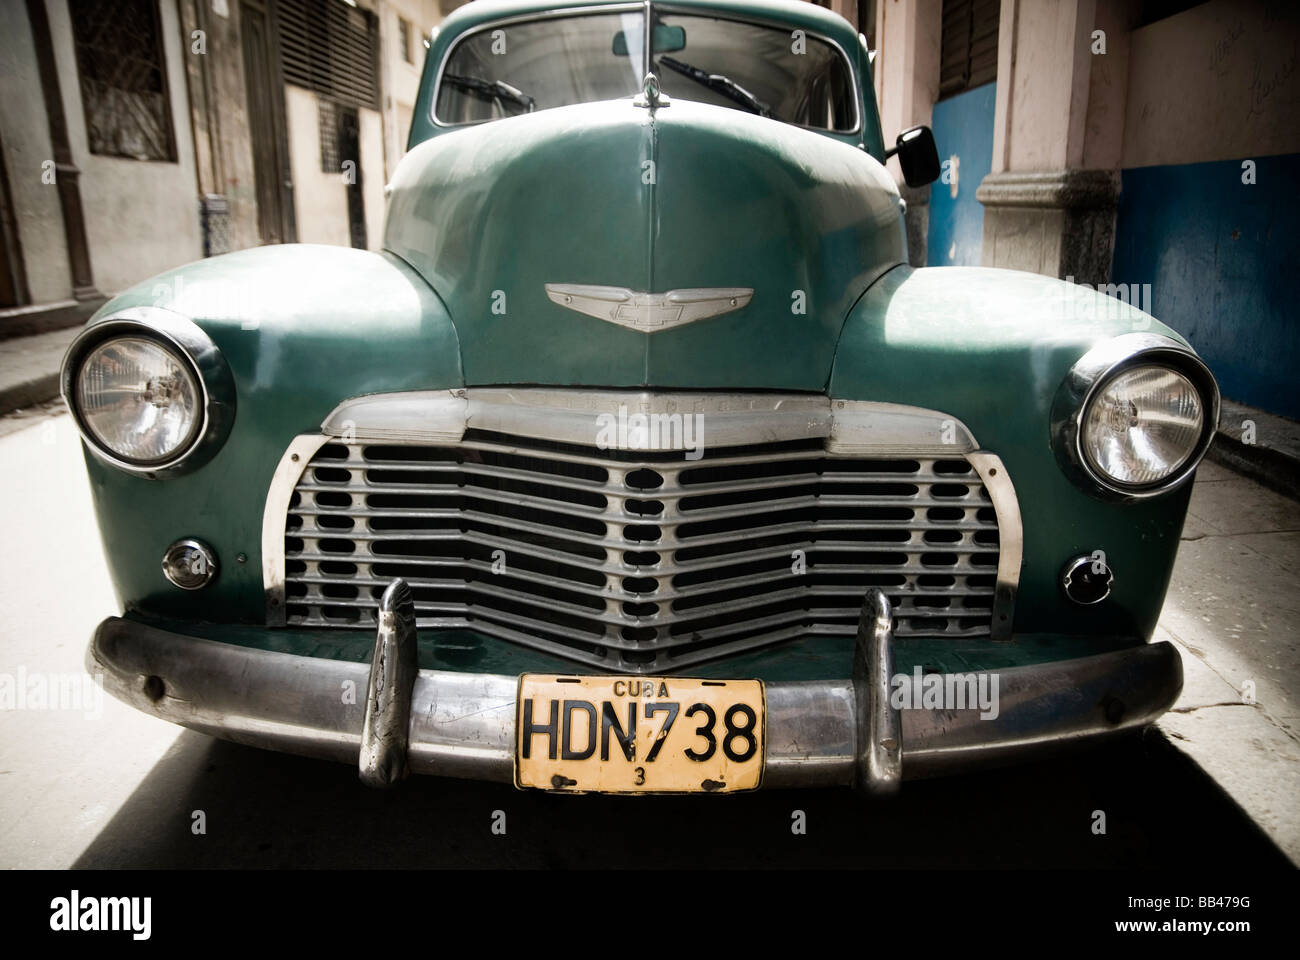 Old Chevy Car Stock Photos & Old Chevy Car Stock Images - Alamy